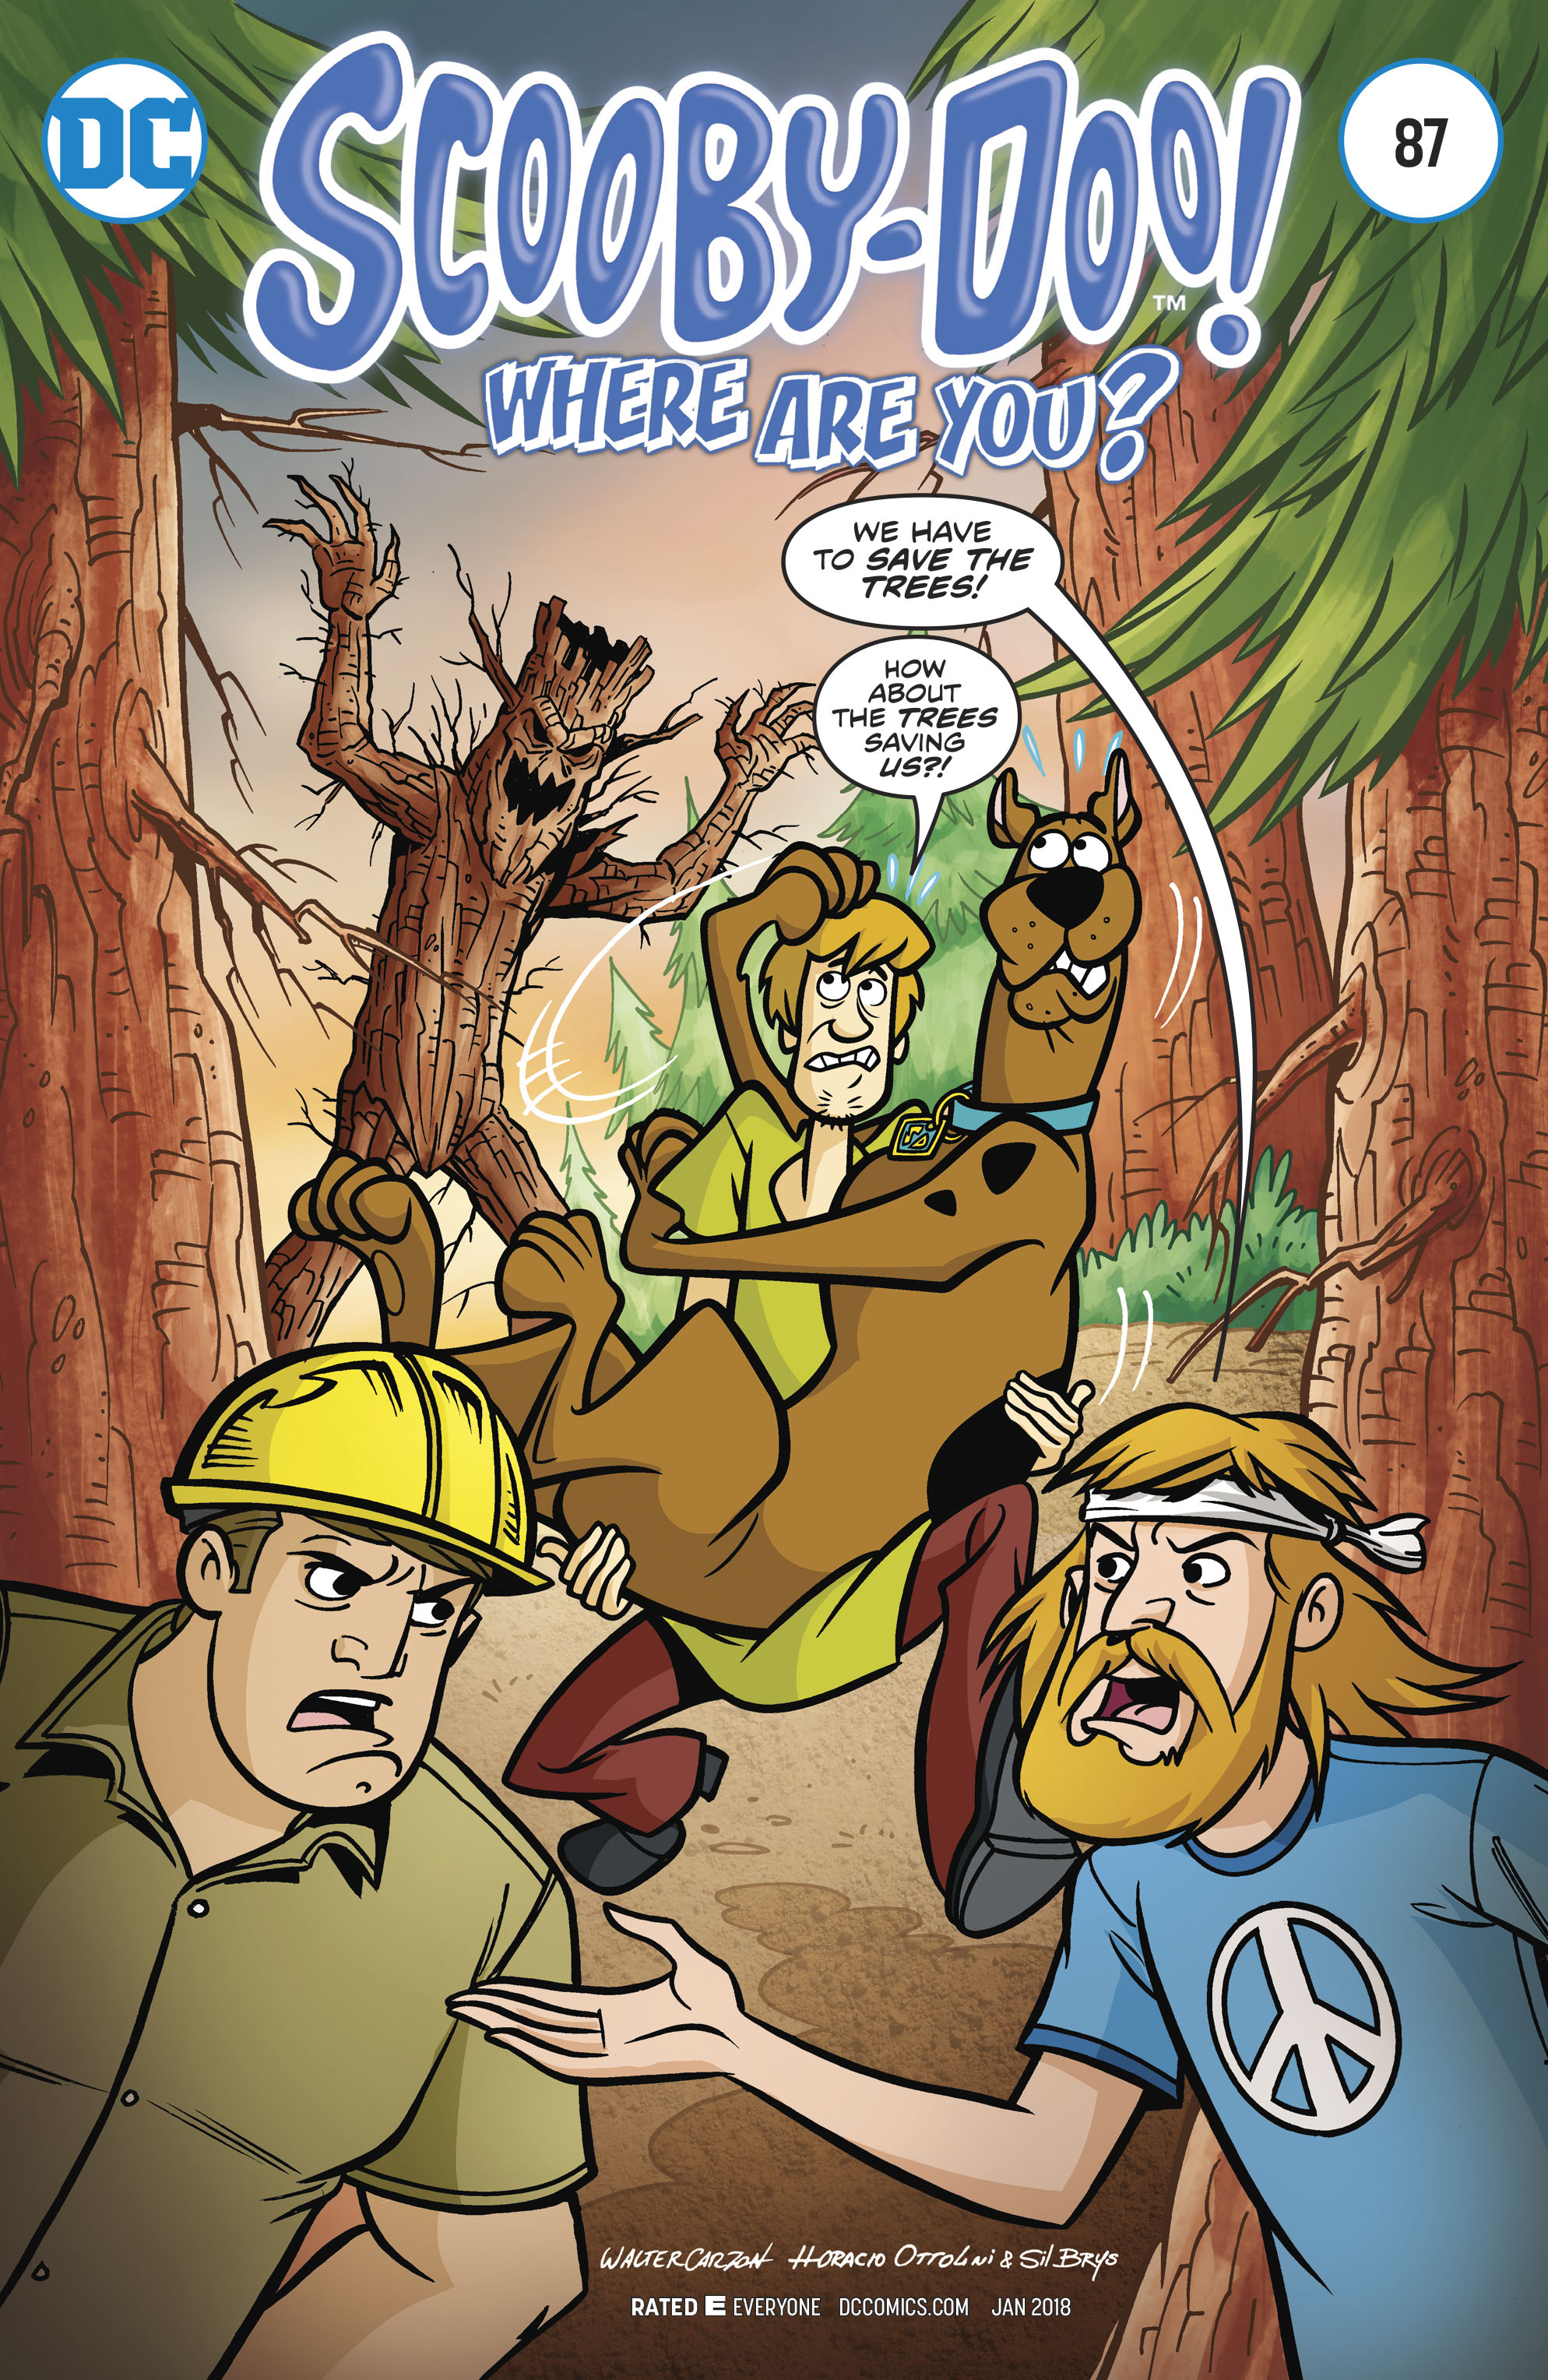 sep170397 - scooby doo where are you #87 - halloween comic fest